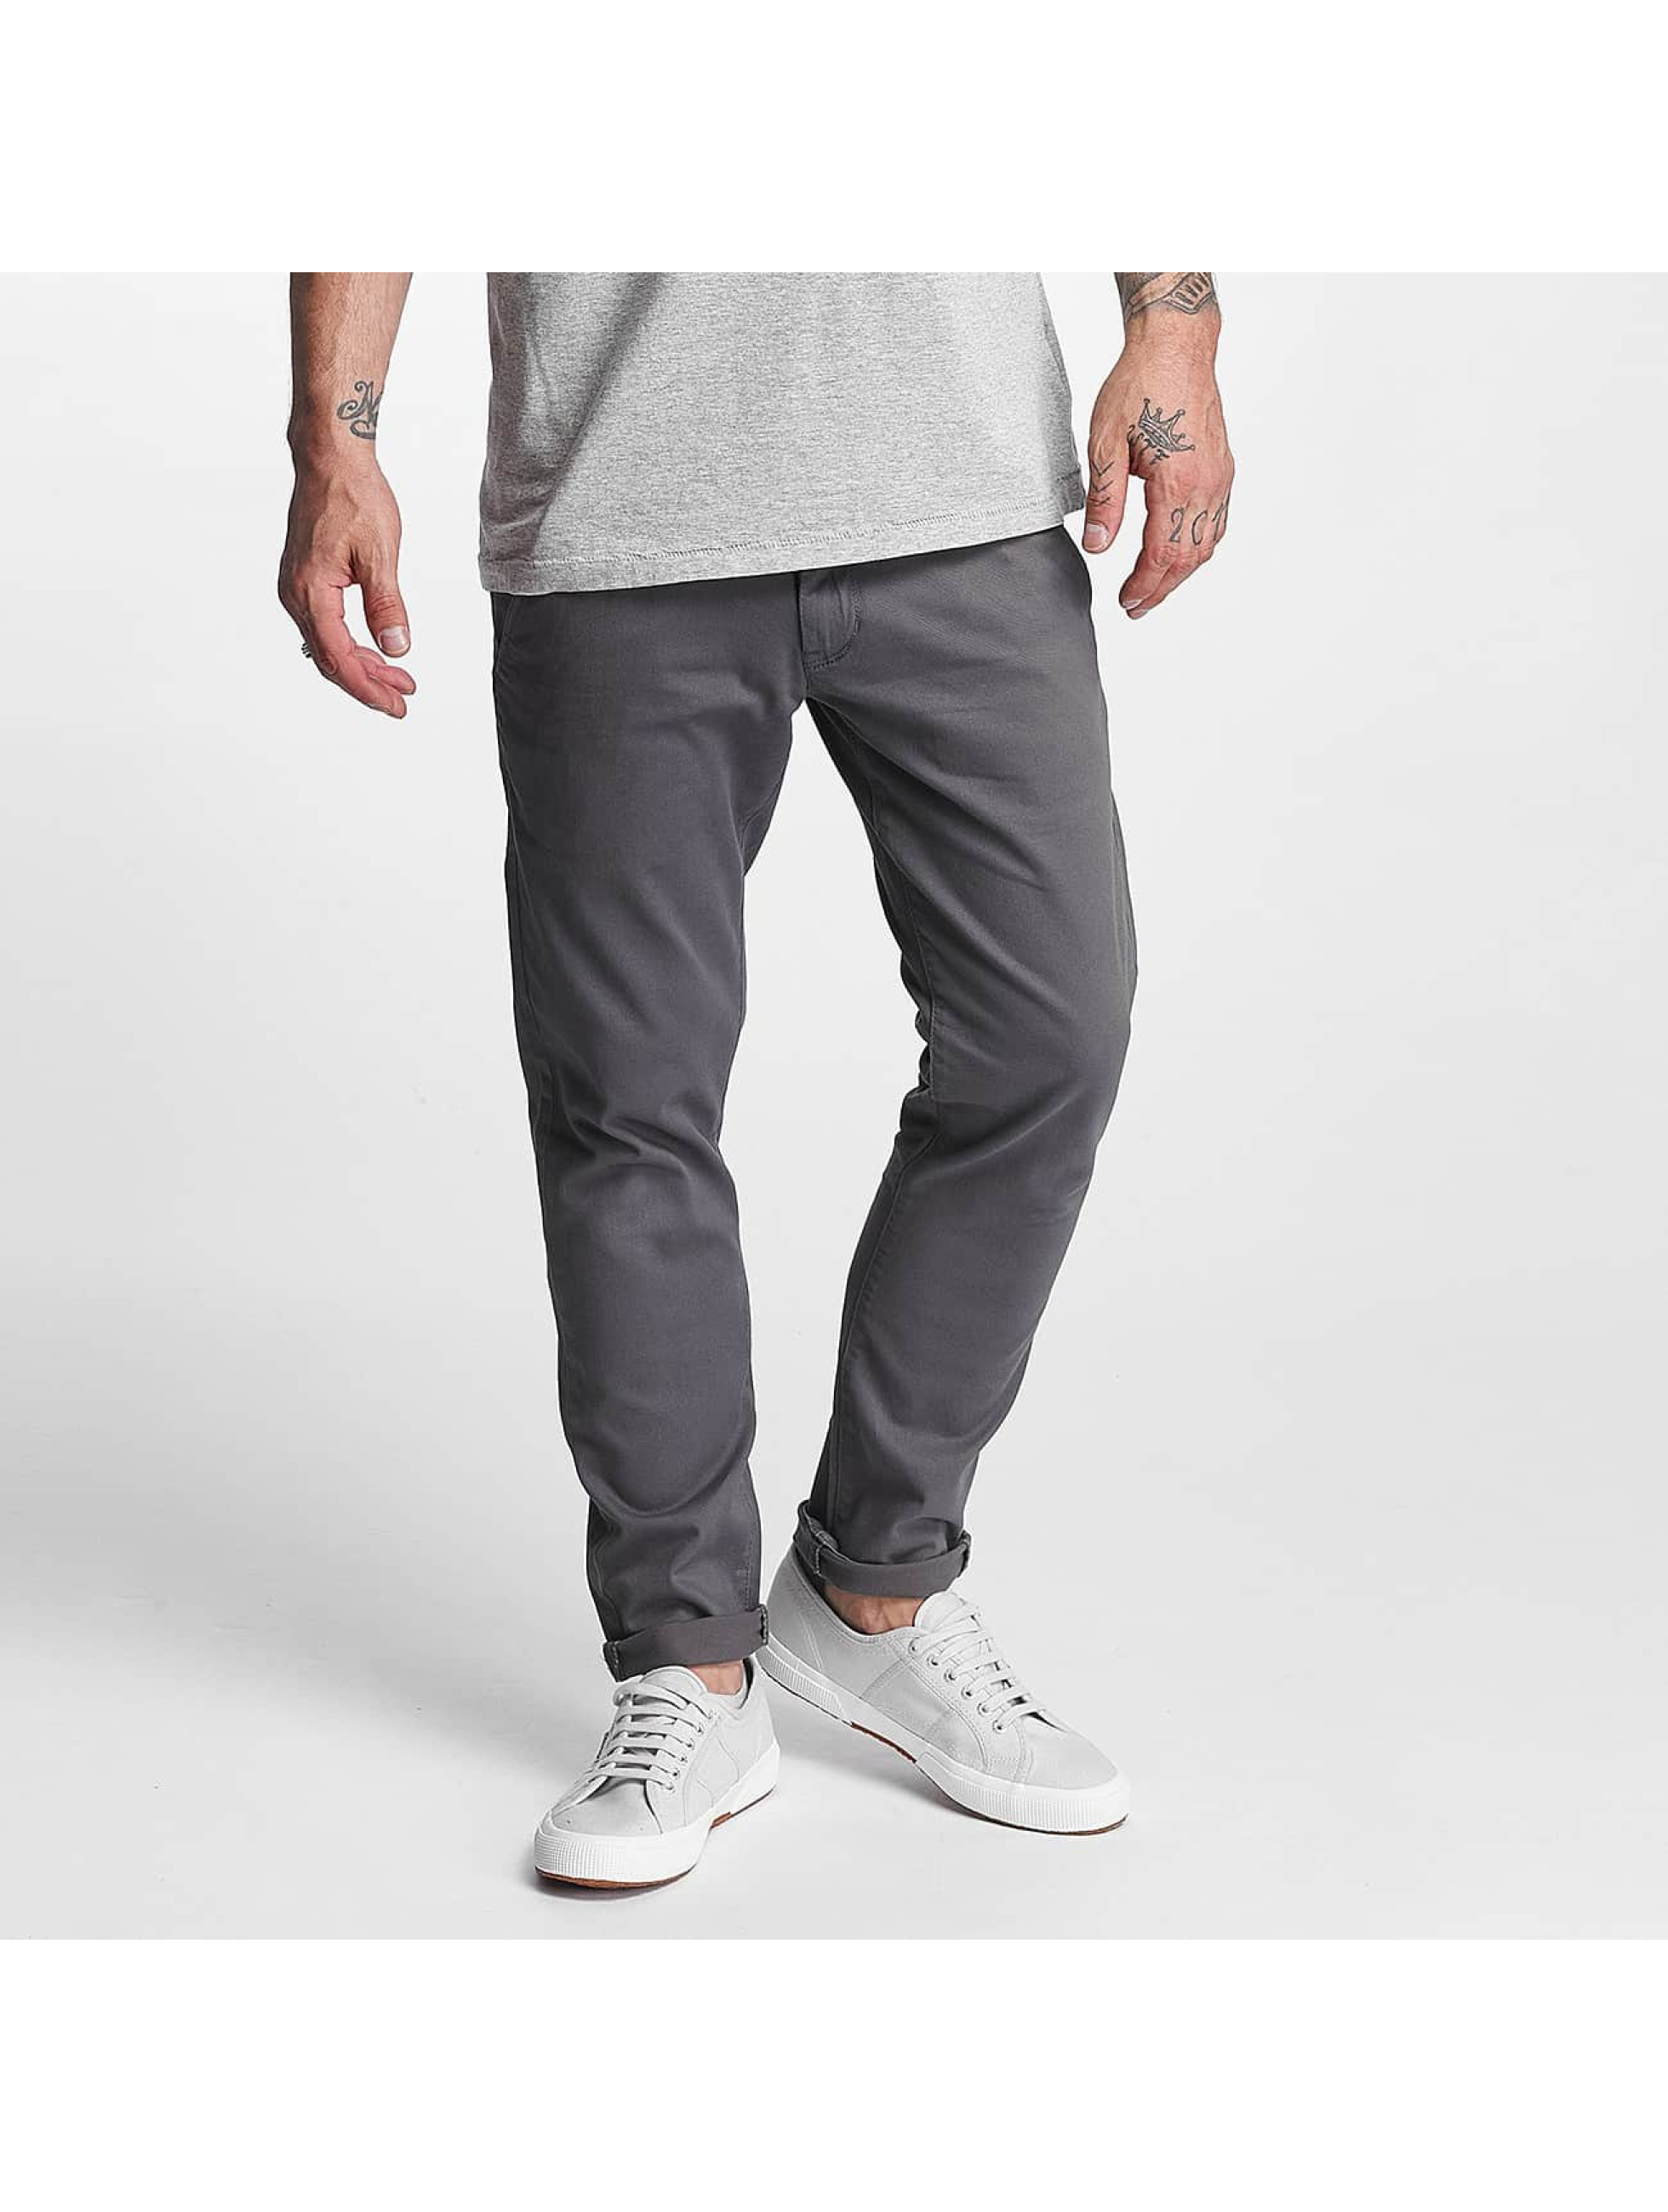 Reell Jeans Männer Chino Flex Tapered in grau